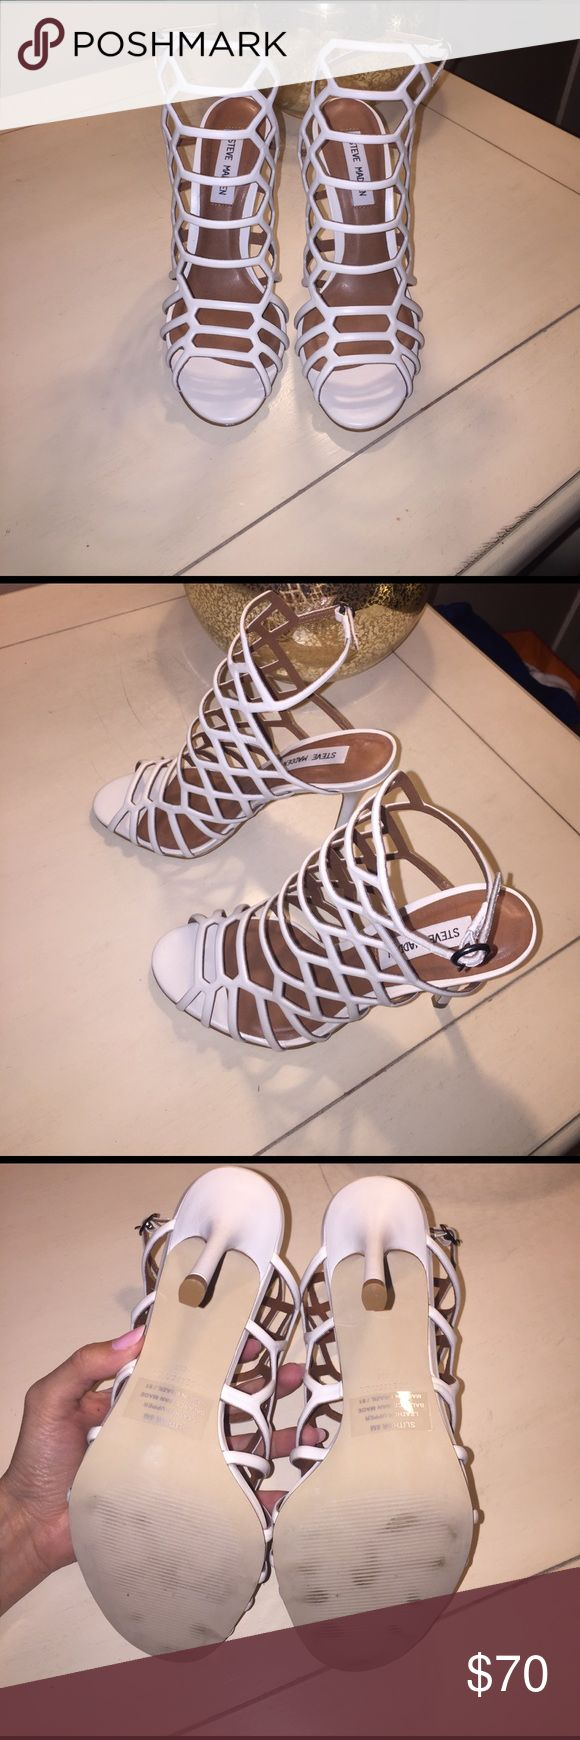 Steve Madden Heels Steve Madden white sandals, never worn, couple scuffs on the bottom of the shoes from trying them on in the store, otherwise perfect condition. No box. Steve Madden Shoes Heels